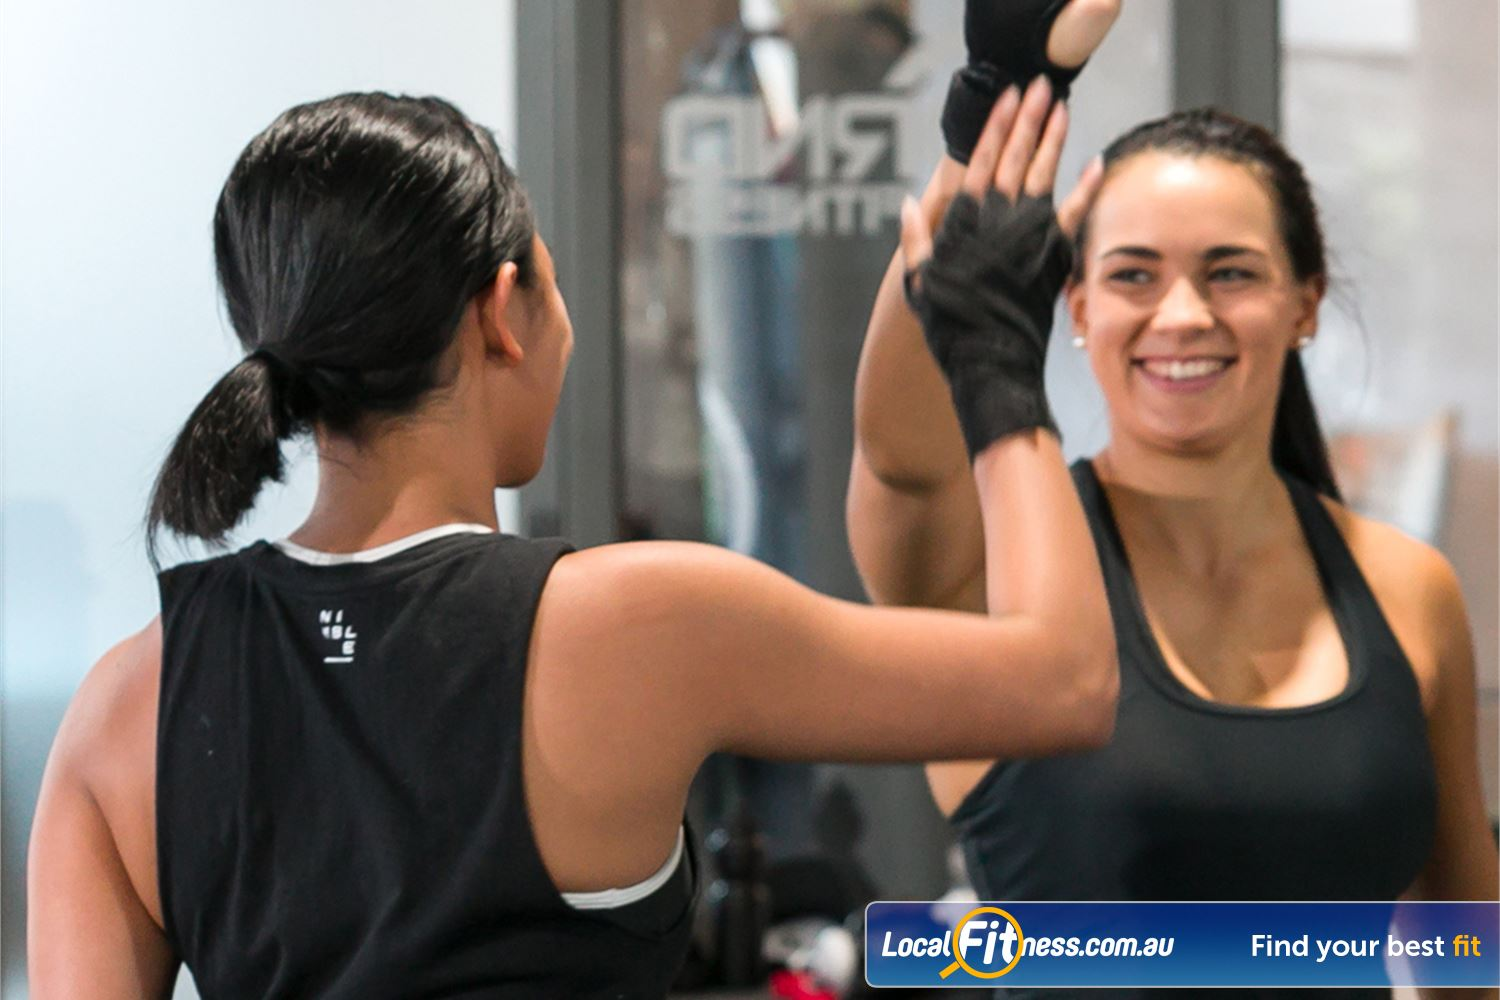 12 Round Fitness Camberwell Our Camberwell group training sessions are fun, fast and never boring.